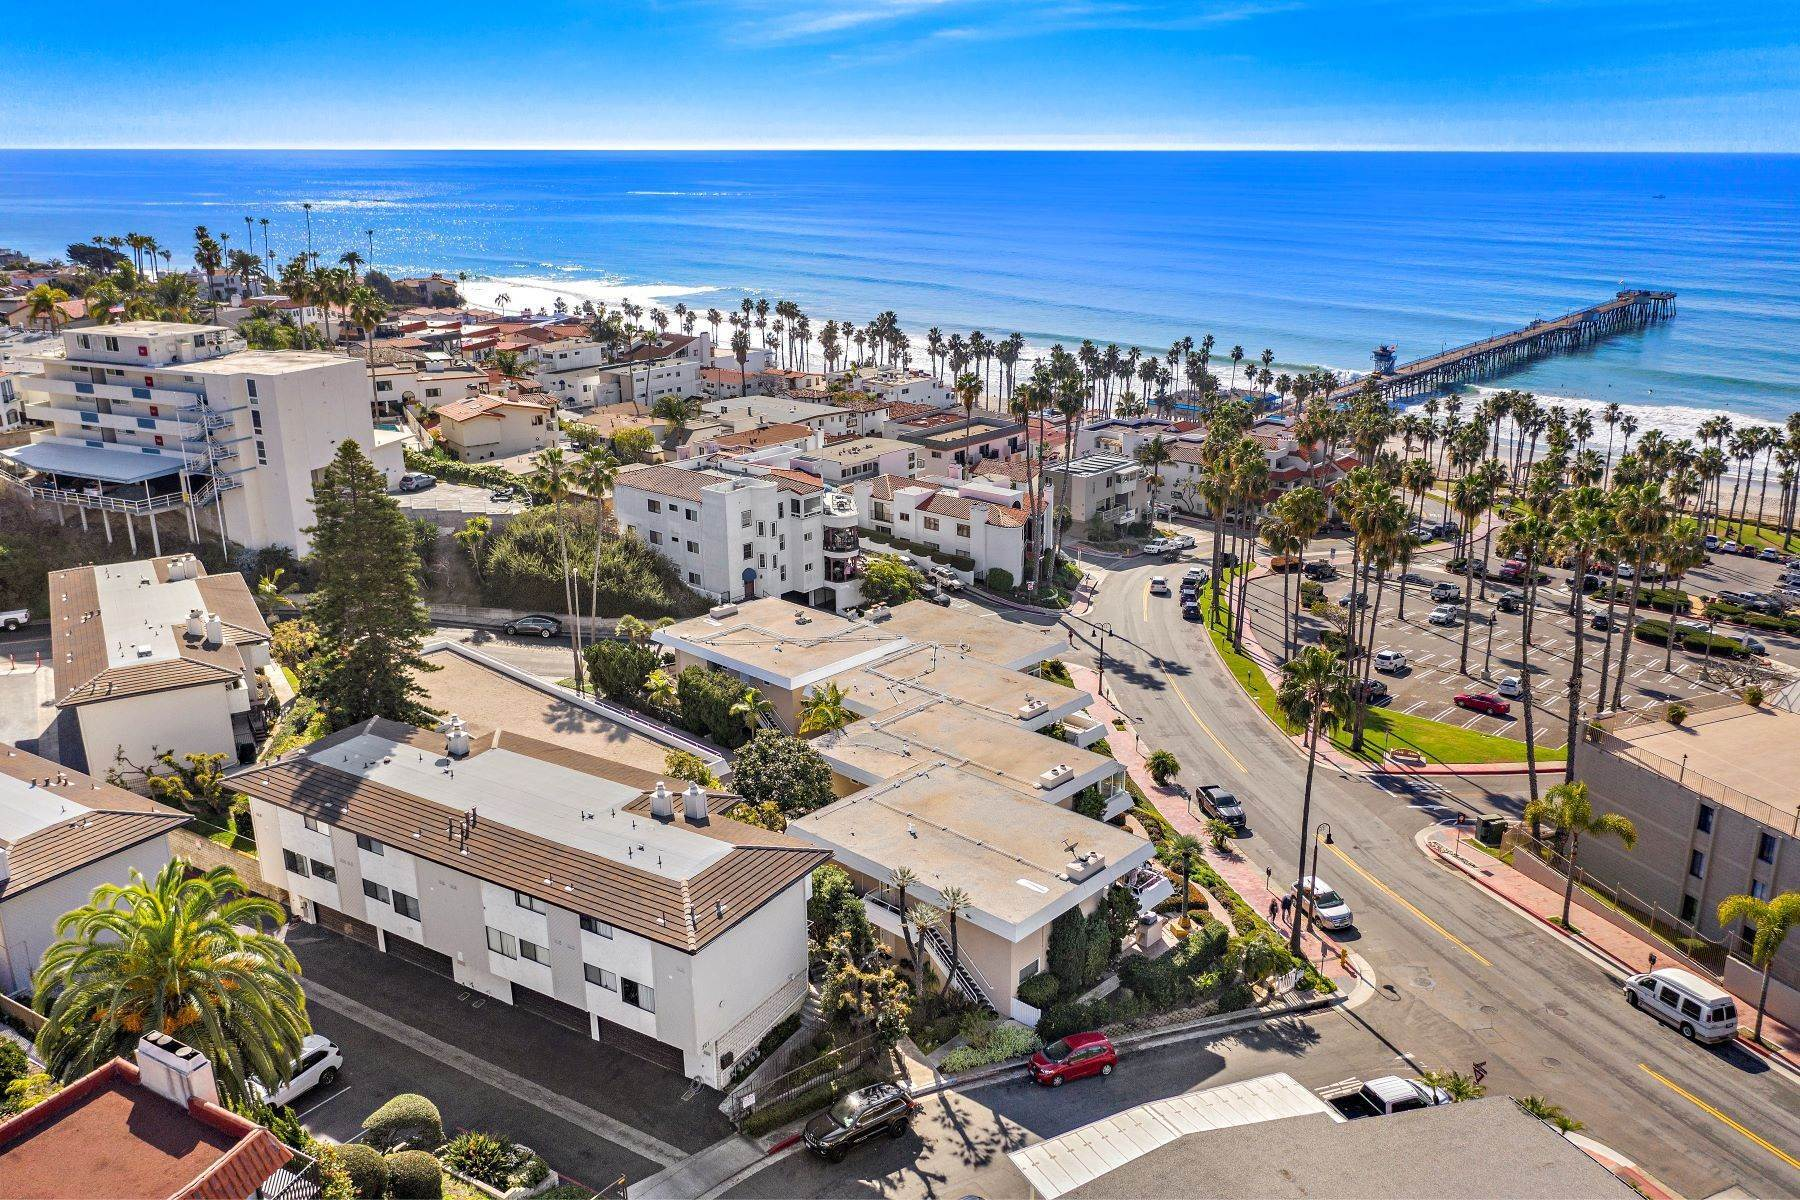 34. Condominiums for Sale at 321 Acebo Lane Unit #C, San Clemente, CA 92672 321 Acebo Lane, Unit #C San Clemente, California 92672 United States